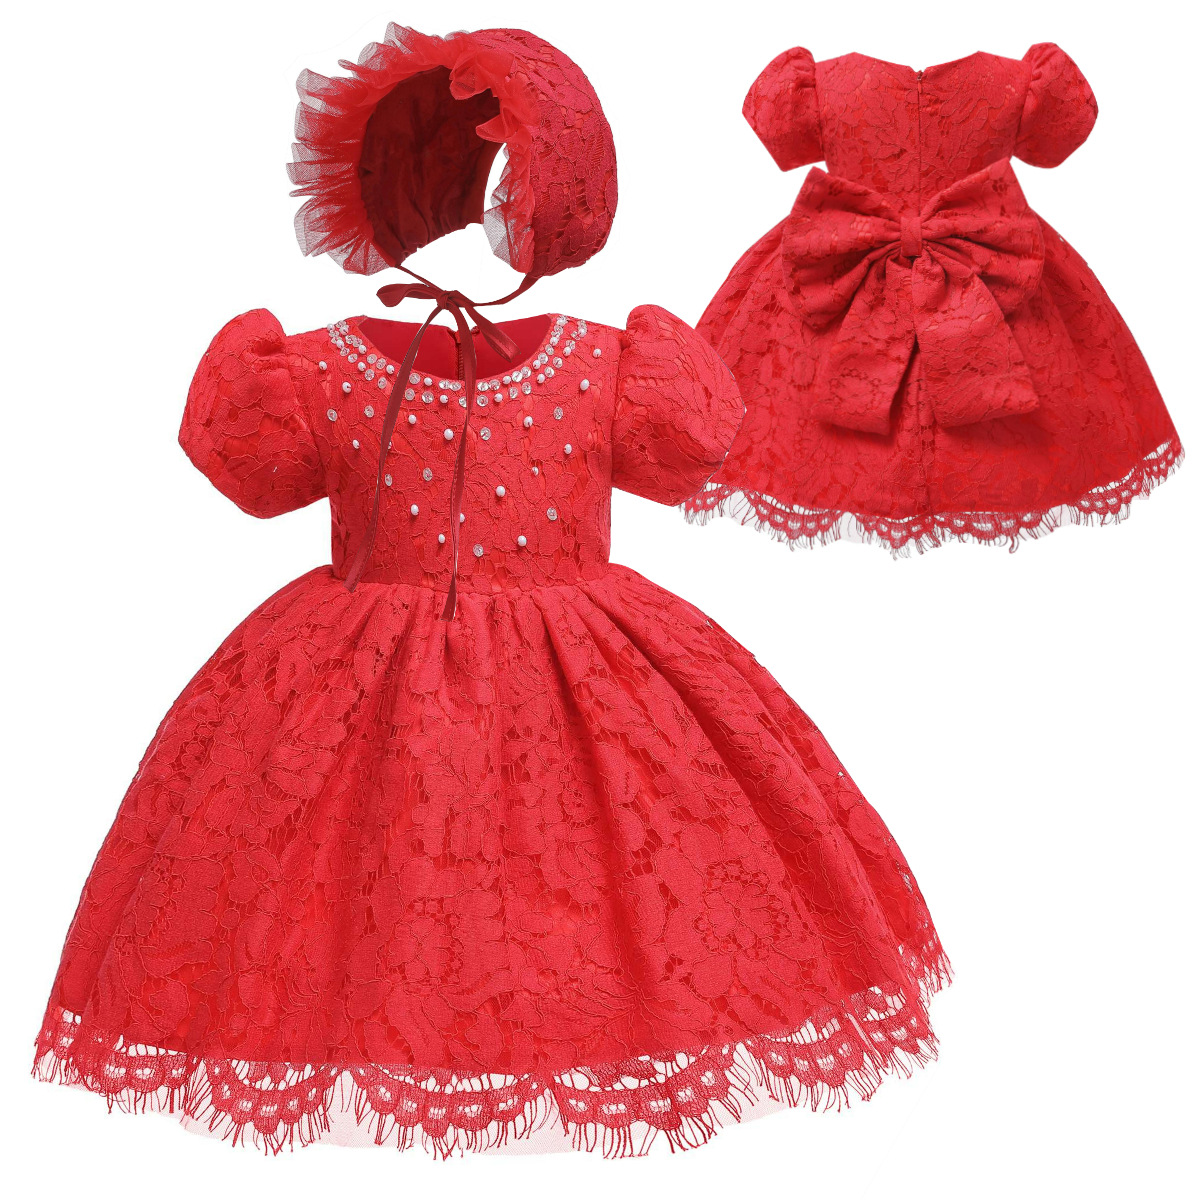 Wish Hot Selling Babies' Dress Europe And America Princess Dress Red Lace A Year Of Age Baby Hundred Days Photography Clothing